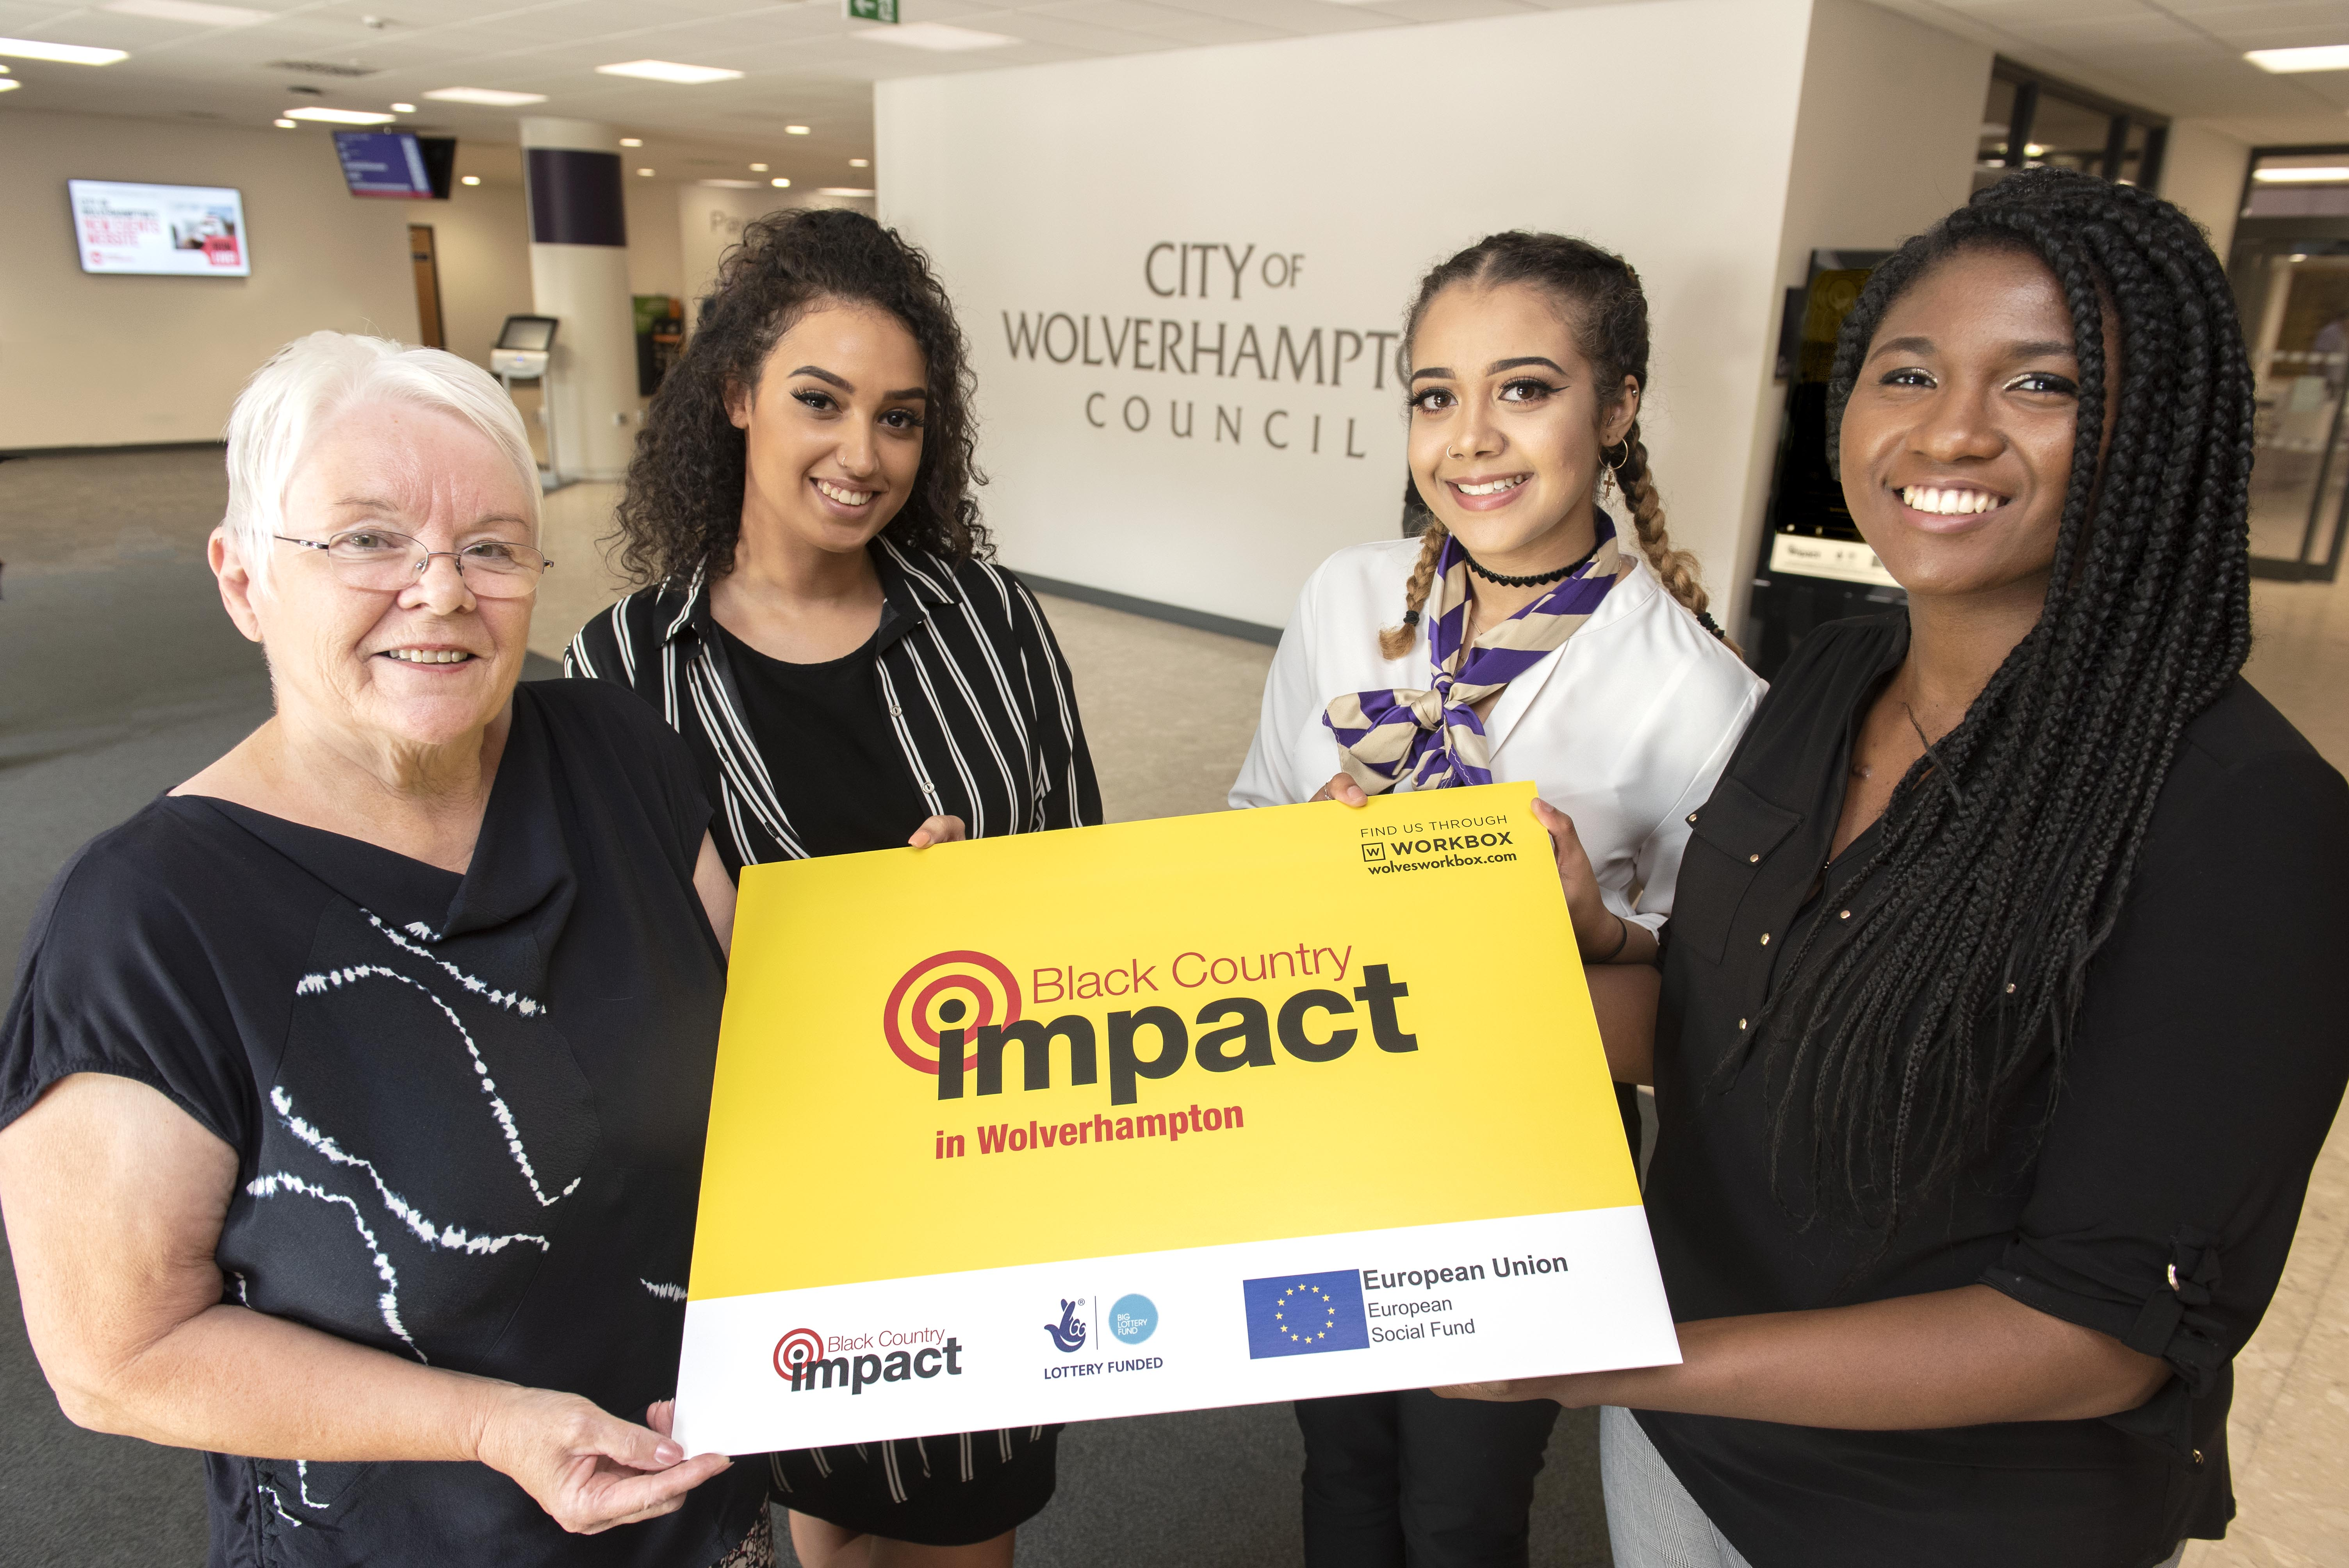 Trio land council jobs through Impact employability programme